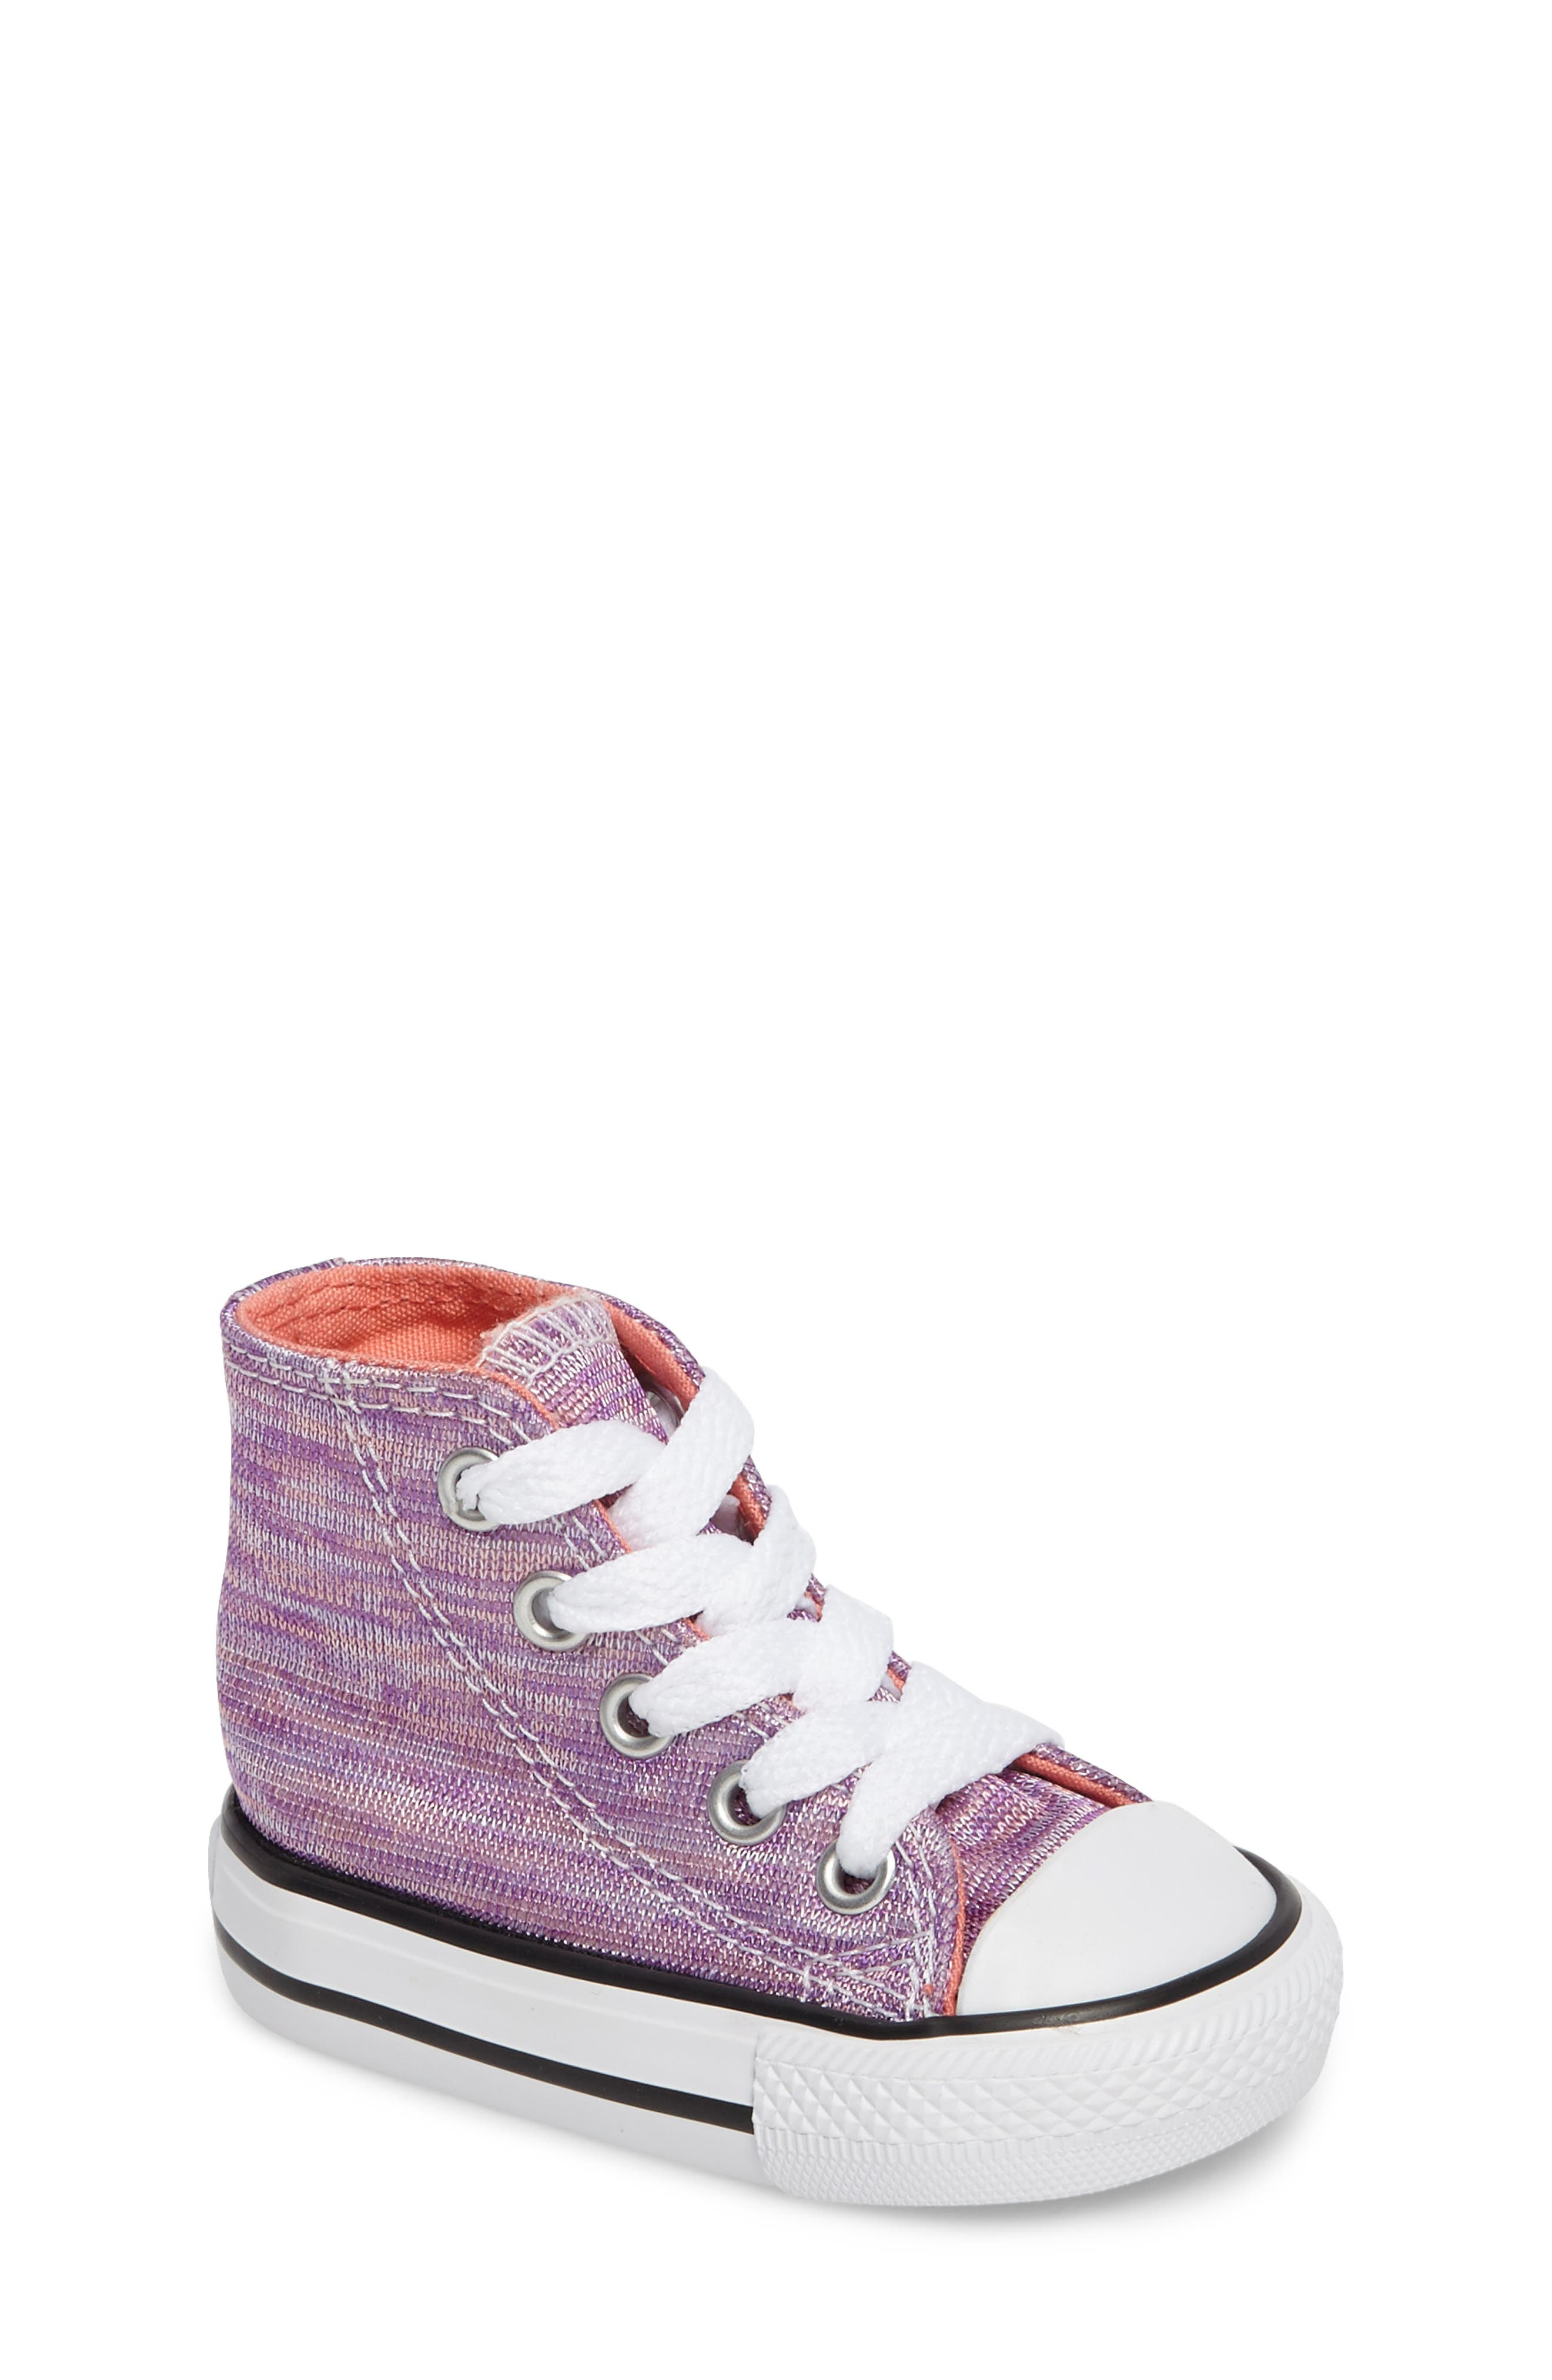 Chuck Taylor<sup>®</sup> All Star<sup>®</sup> Knit High Top Sneaker,                         Main,                         color, 504